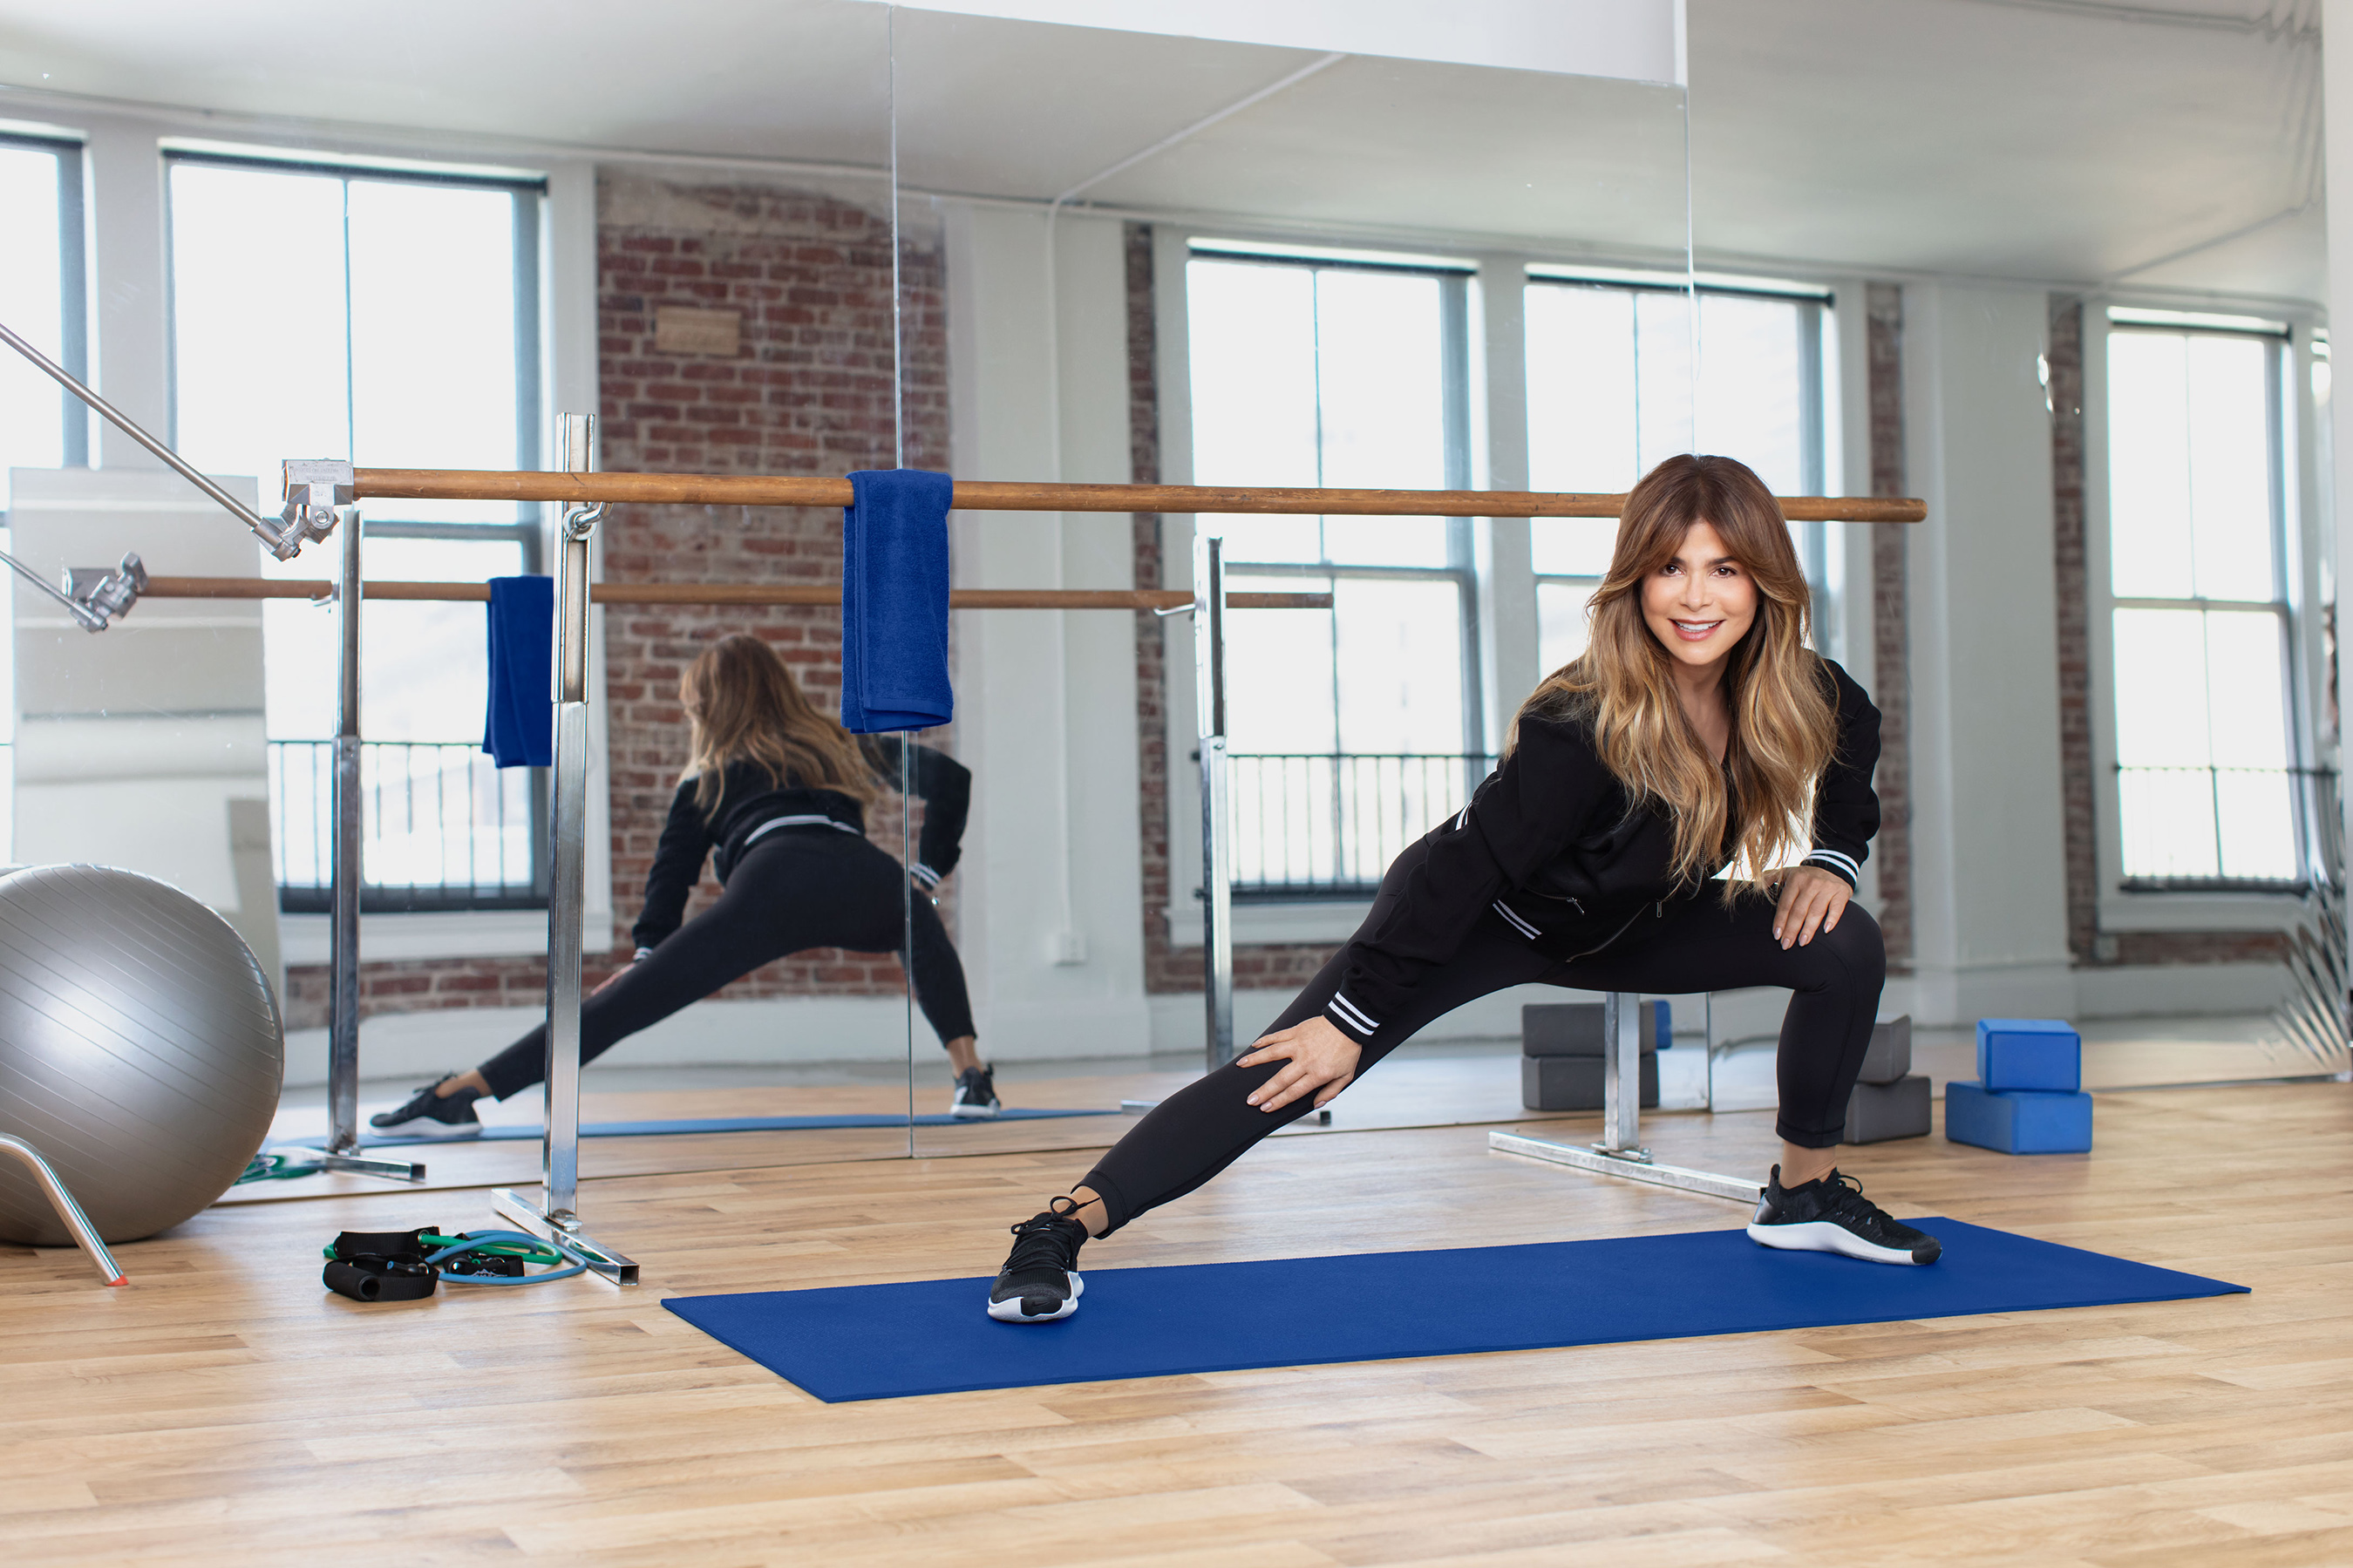 Voltaren teams up with music superstar Paula Abdul to inspire people everywhere to rediscover the joy of movement.